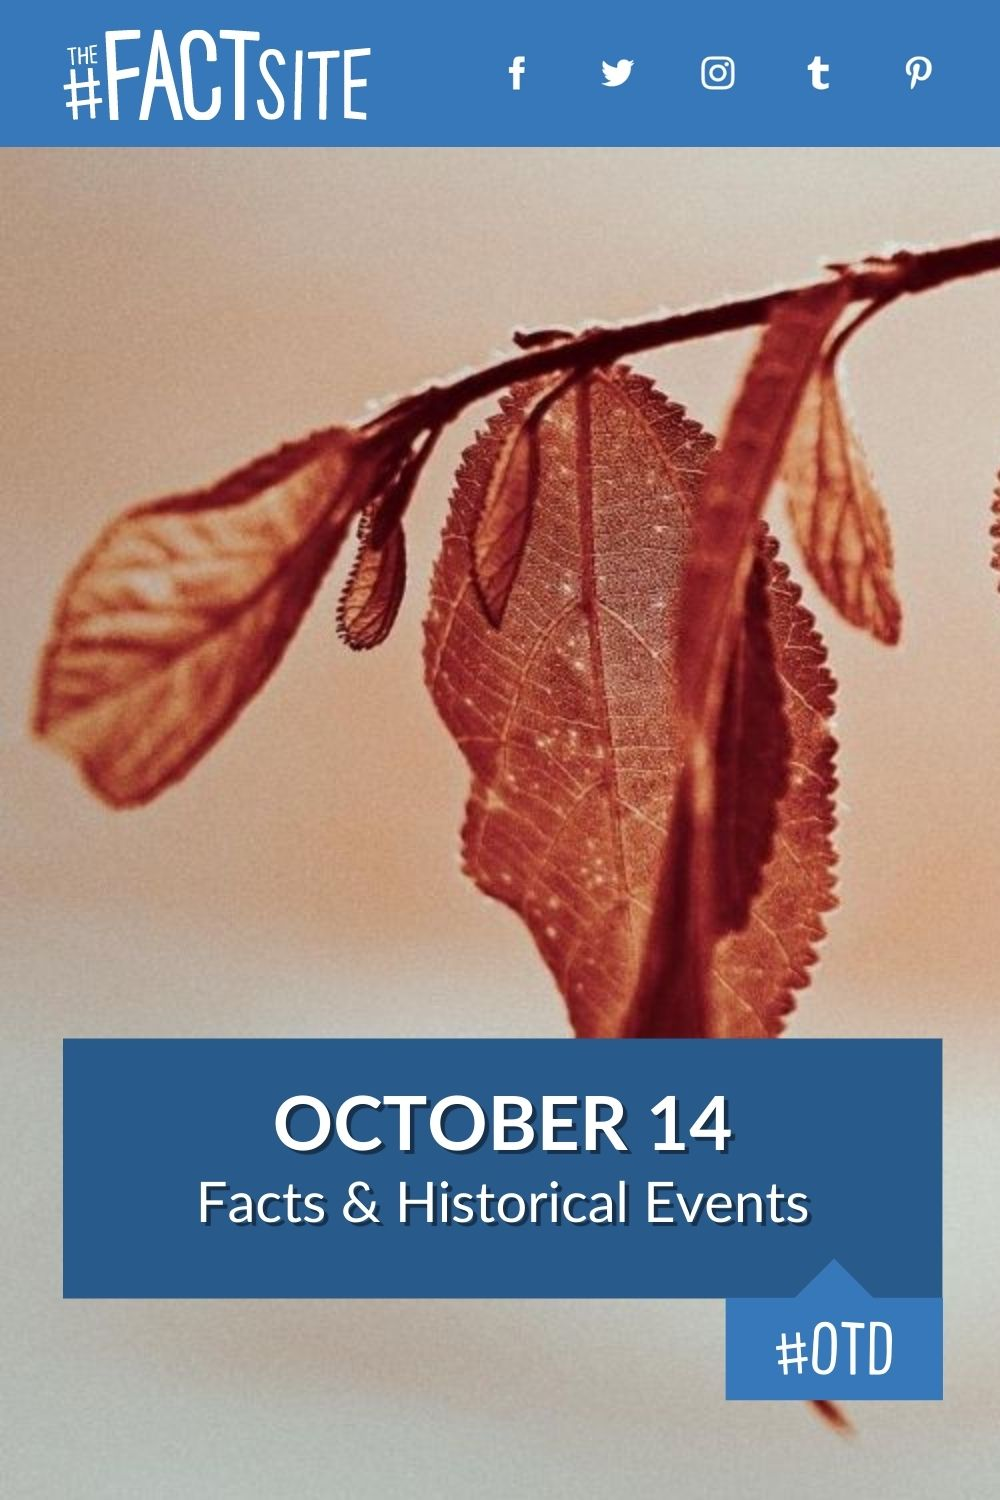 Facts & Historic Events That Happened on October 14